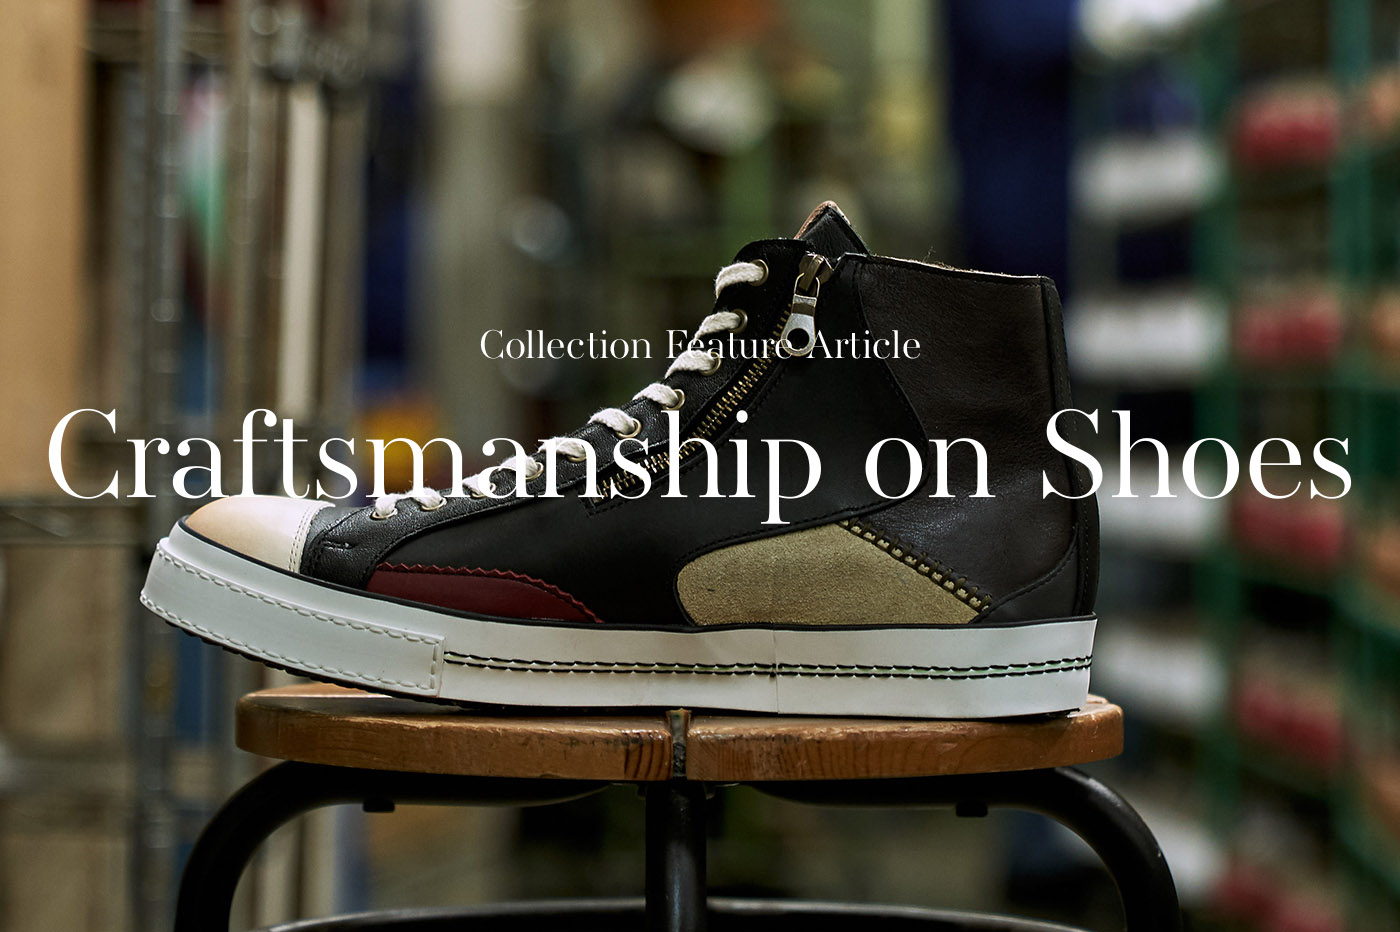 Craftsmanship on Shoes